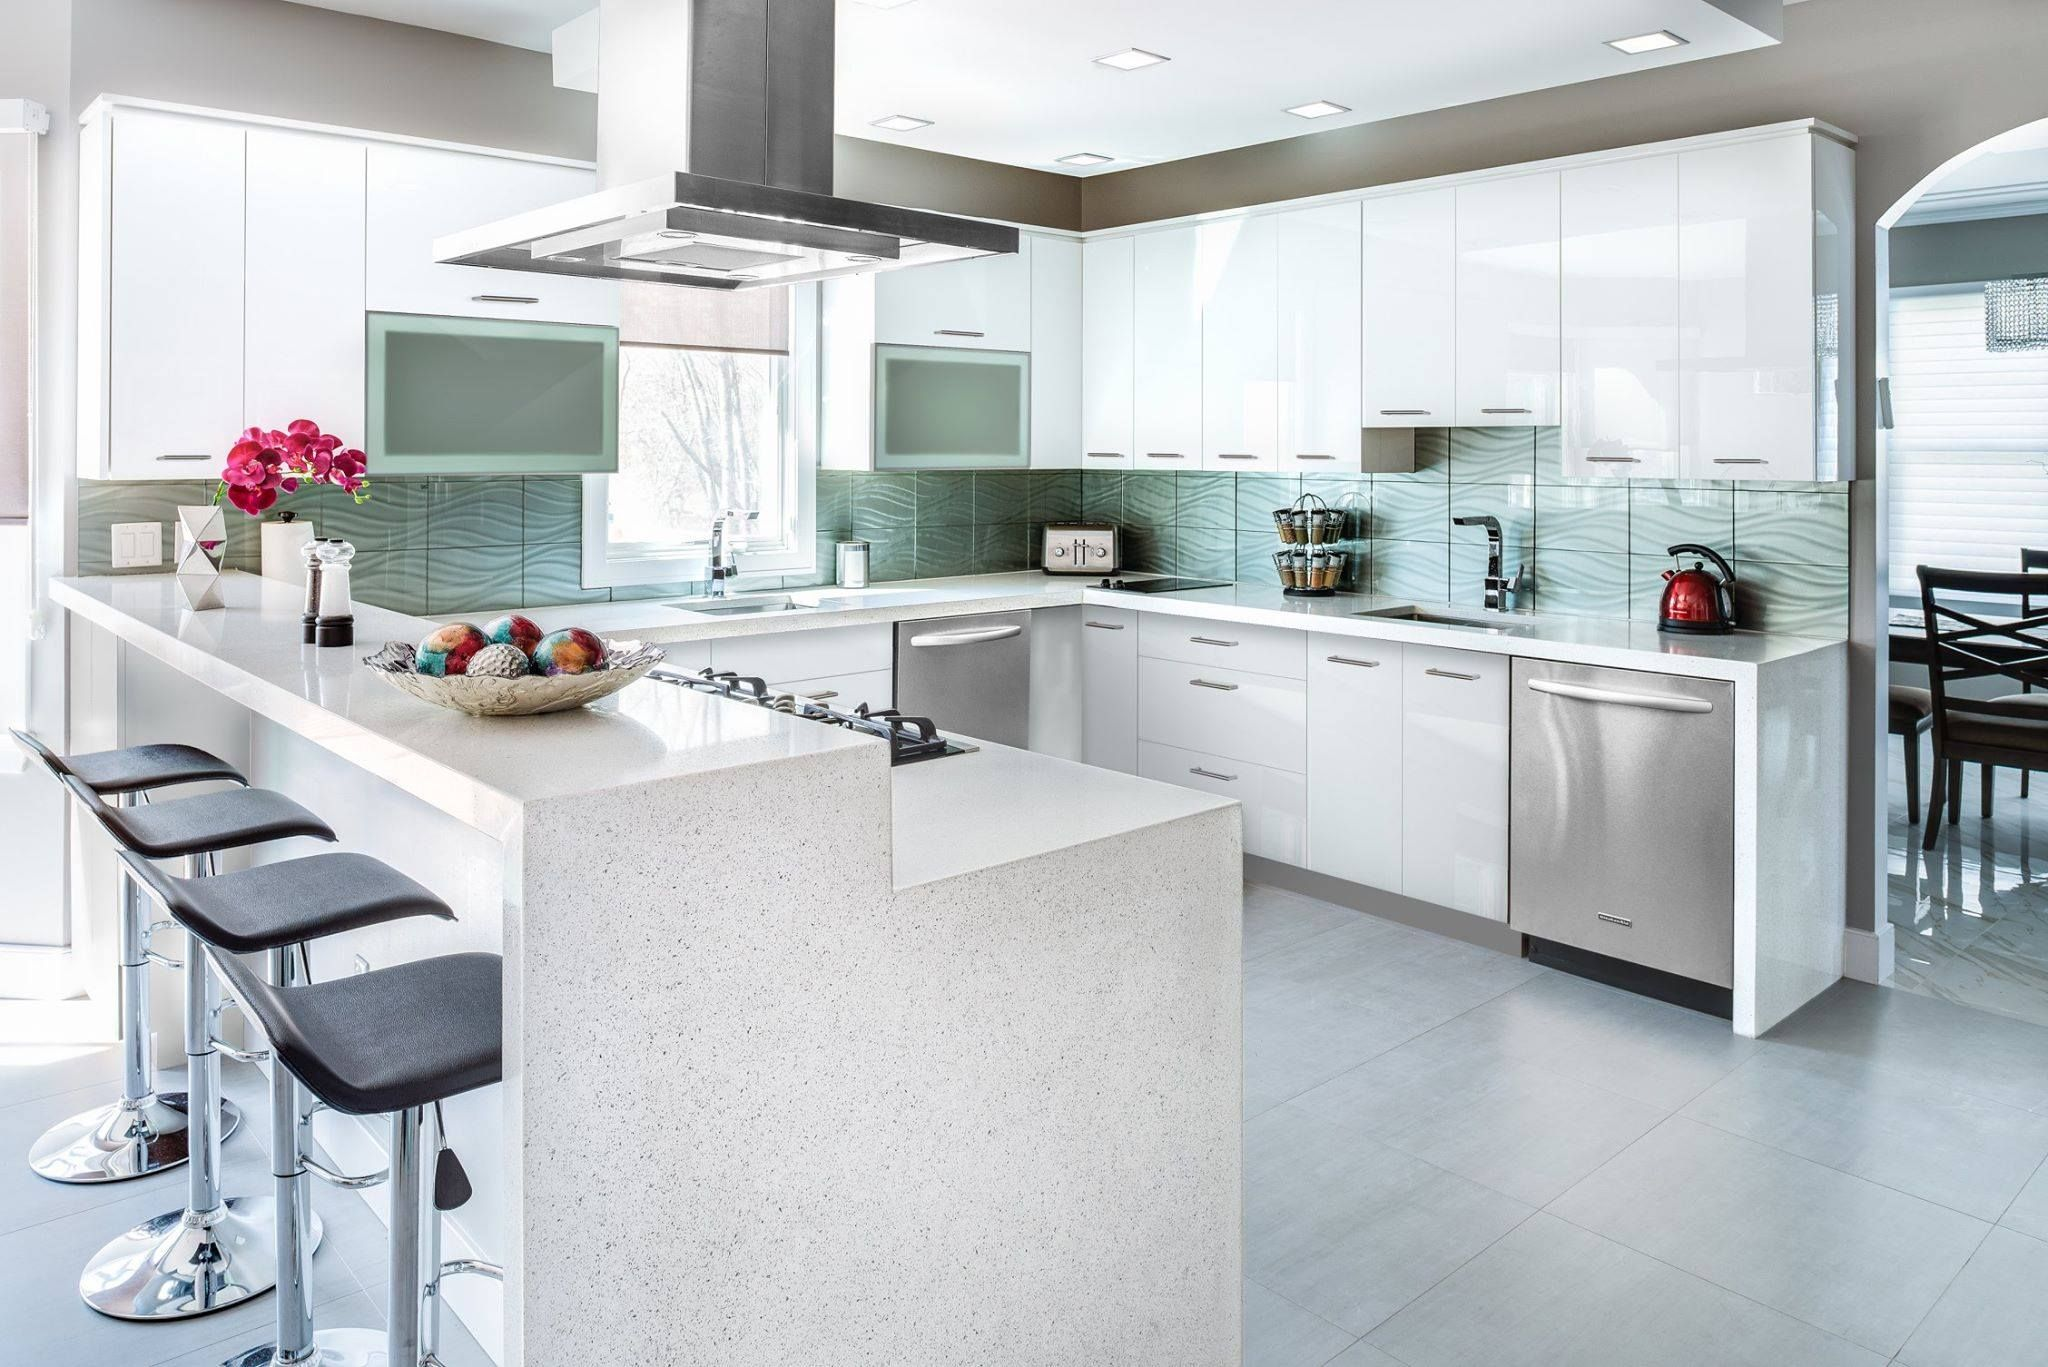 There Is Something Great About The Prima Bianco Kitchen Style That We Can T Put Our Finge High Gloss Kitchen Cabinets High Gloss Kitchen Gloss Kitchen Cabinets